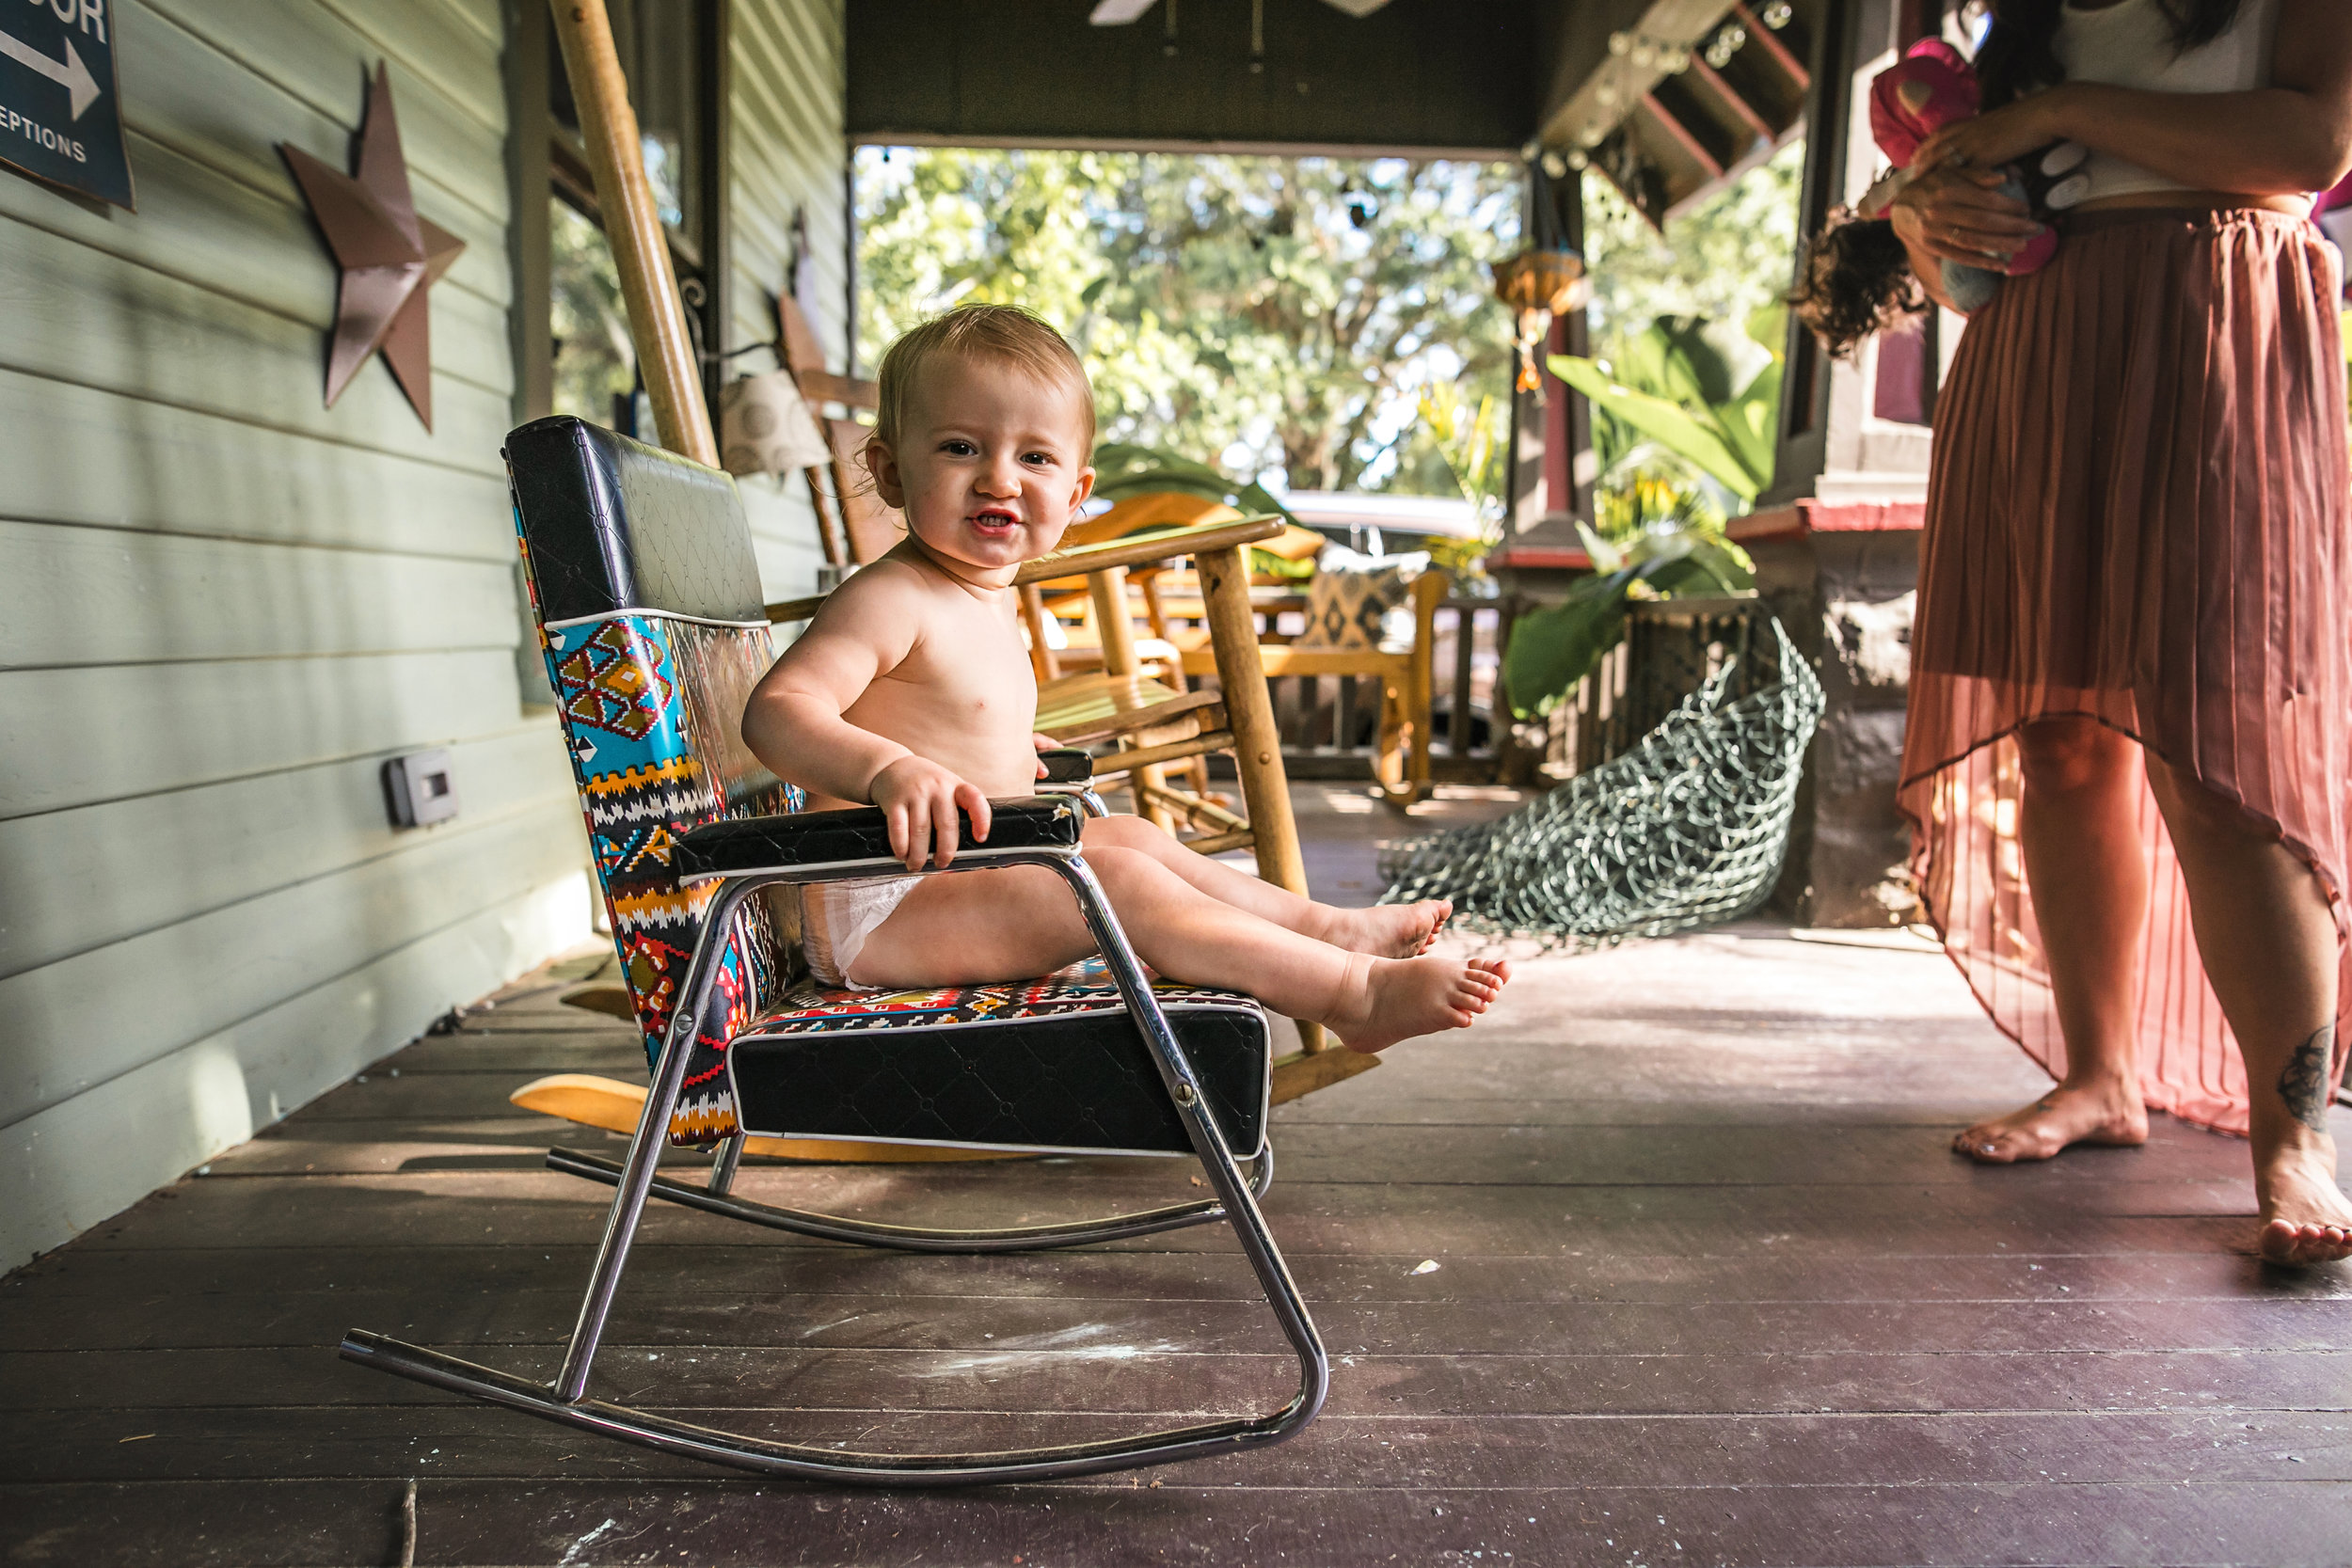 baby sits in rocking chair on front porch wearing a diaper 2-(ZF-0126-04493-1-032).jpg